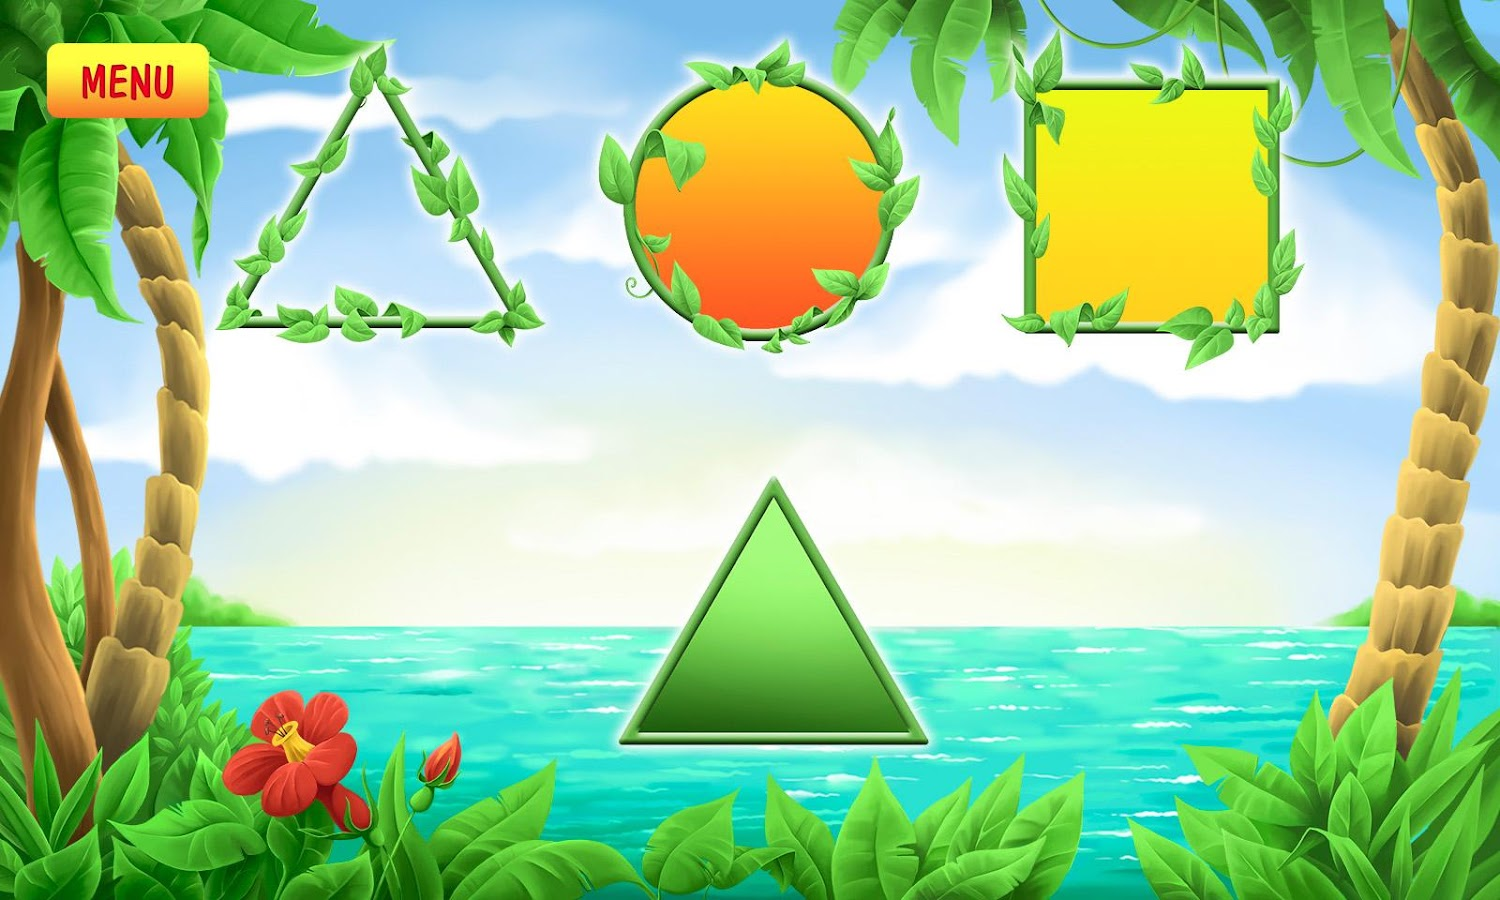 Learn Shapes for Kids, Toddlers - Educational Game- screenshot